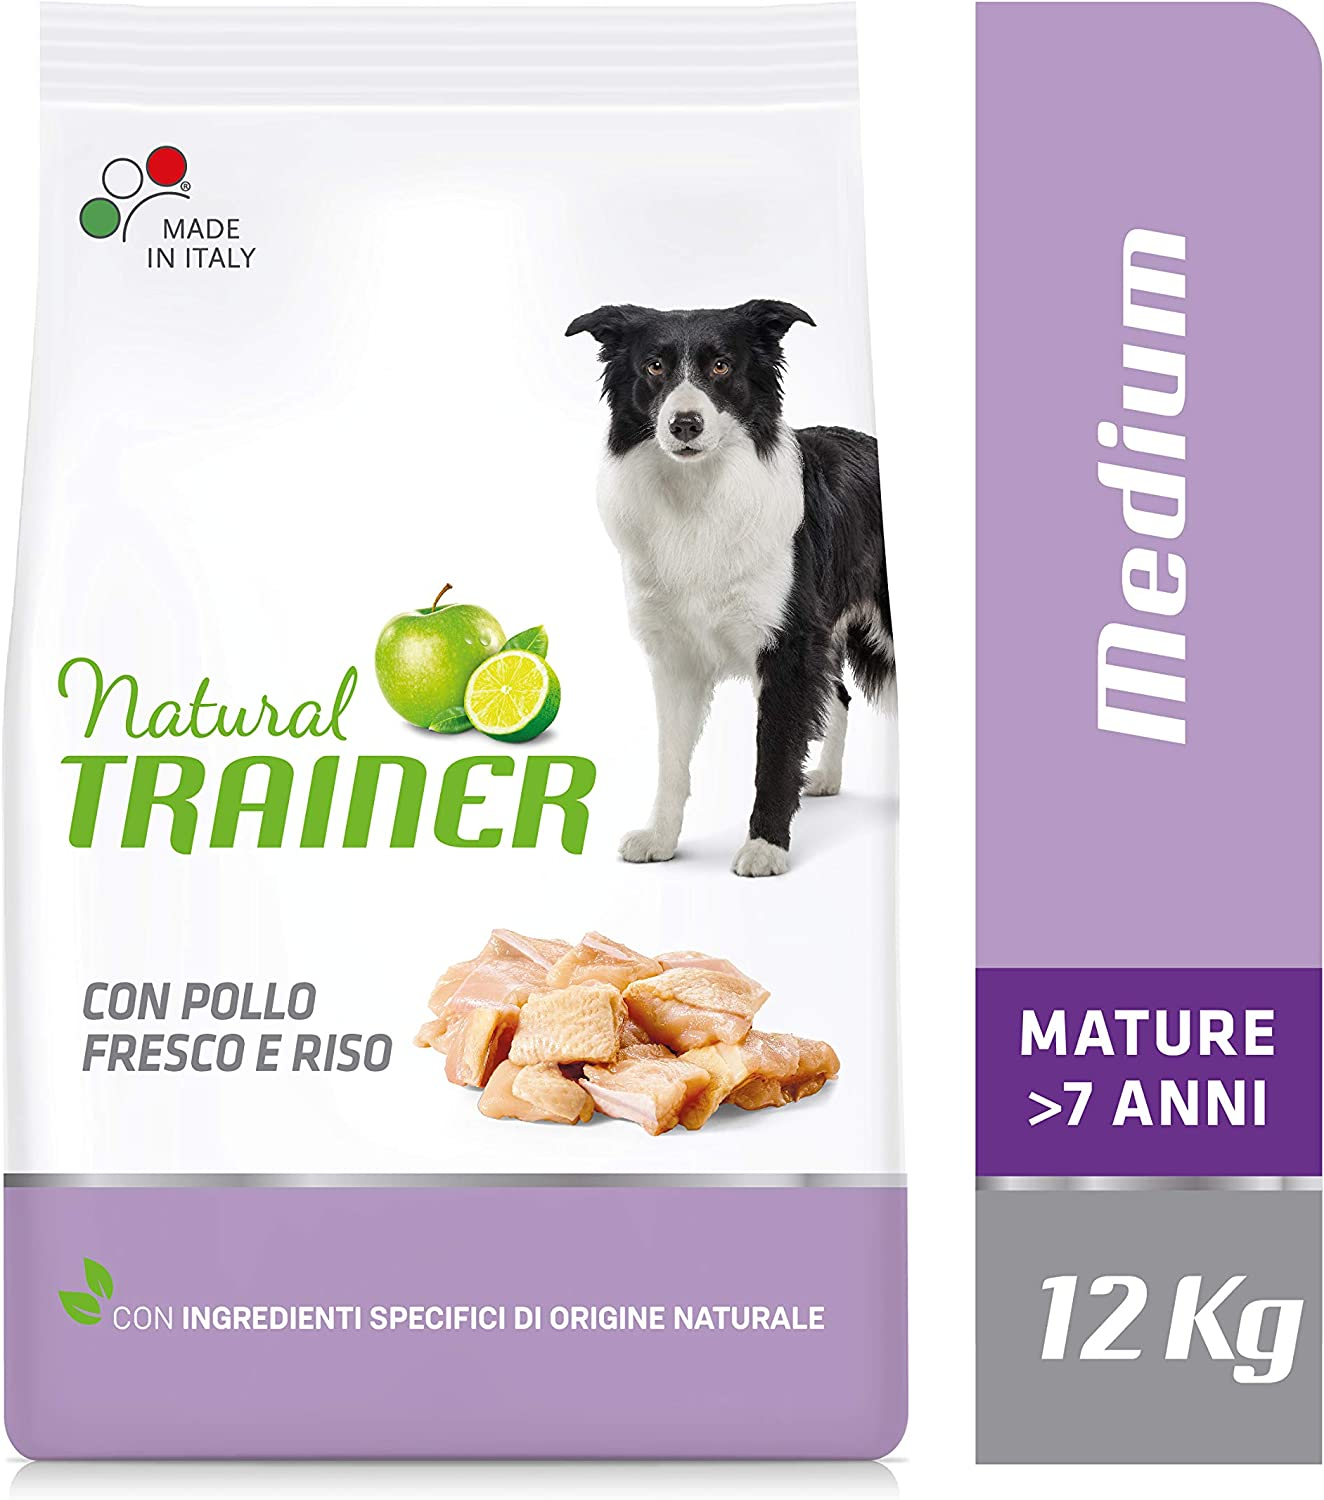 Trainer Natural Canine Medium Pollo 12KG Negro 12